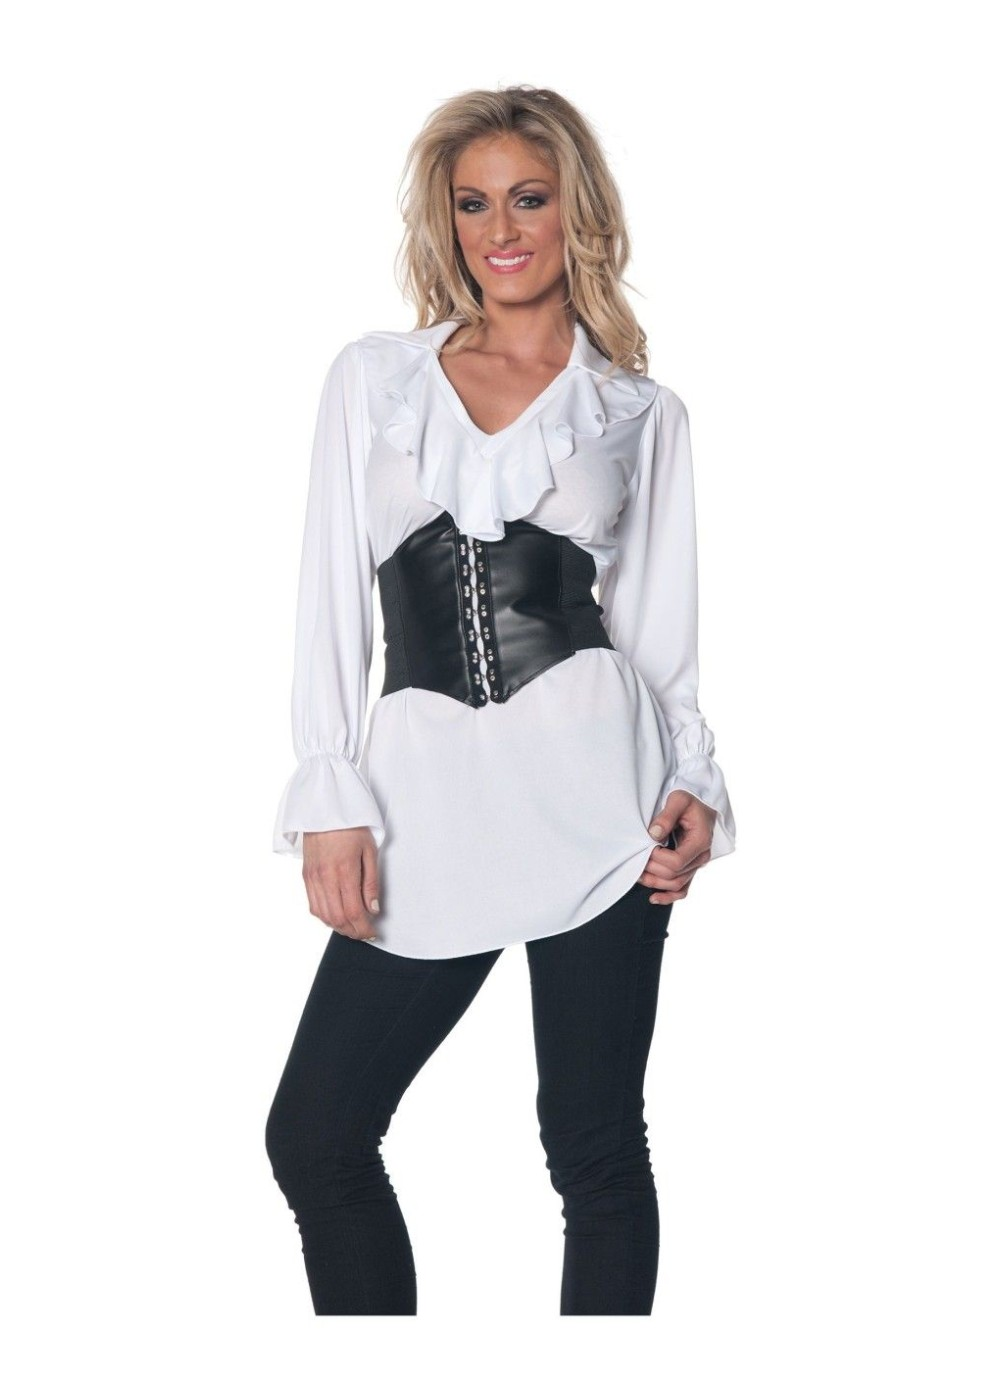 Pirate Woman Blouse And Waist Cincher Costume Kit